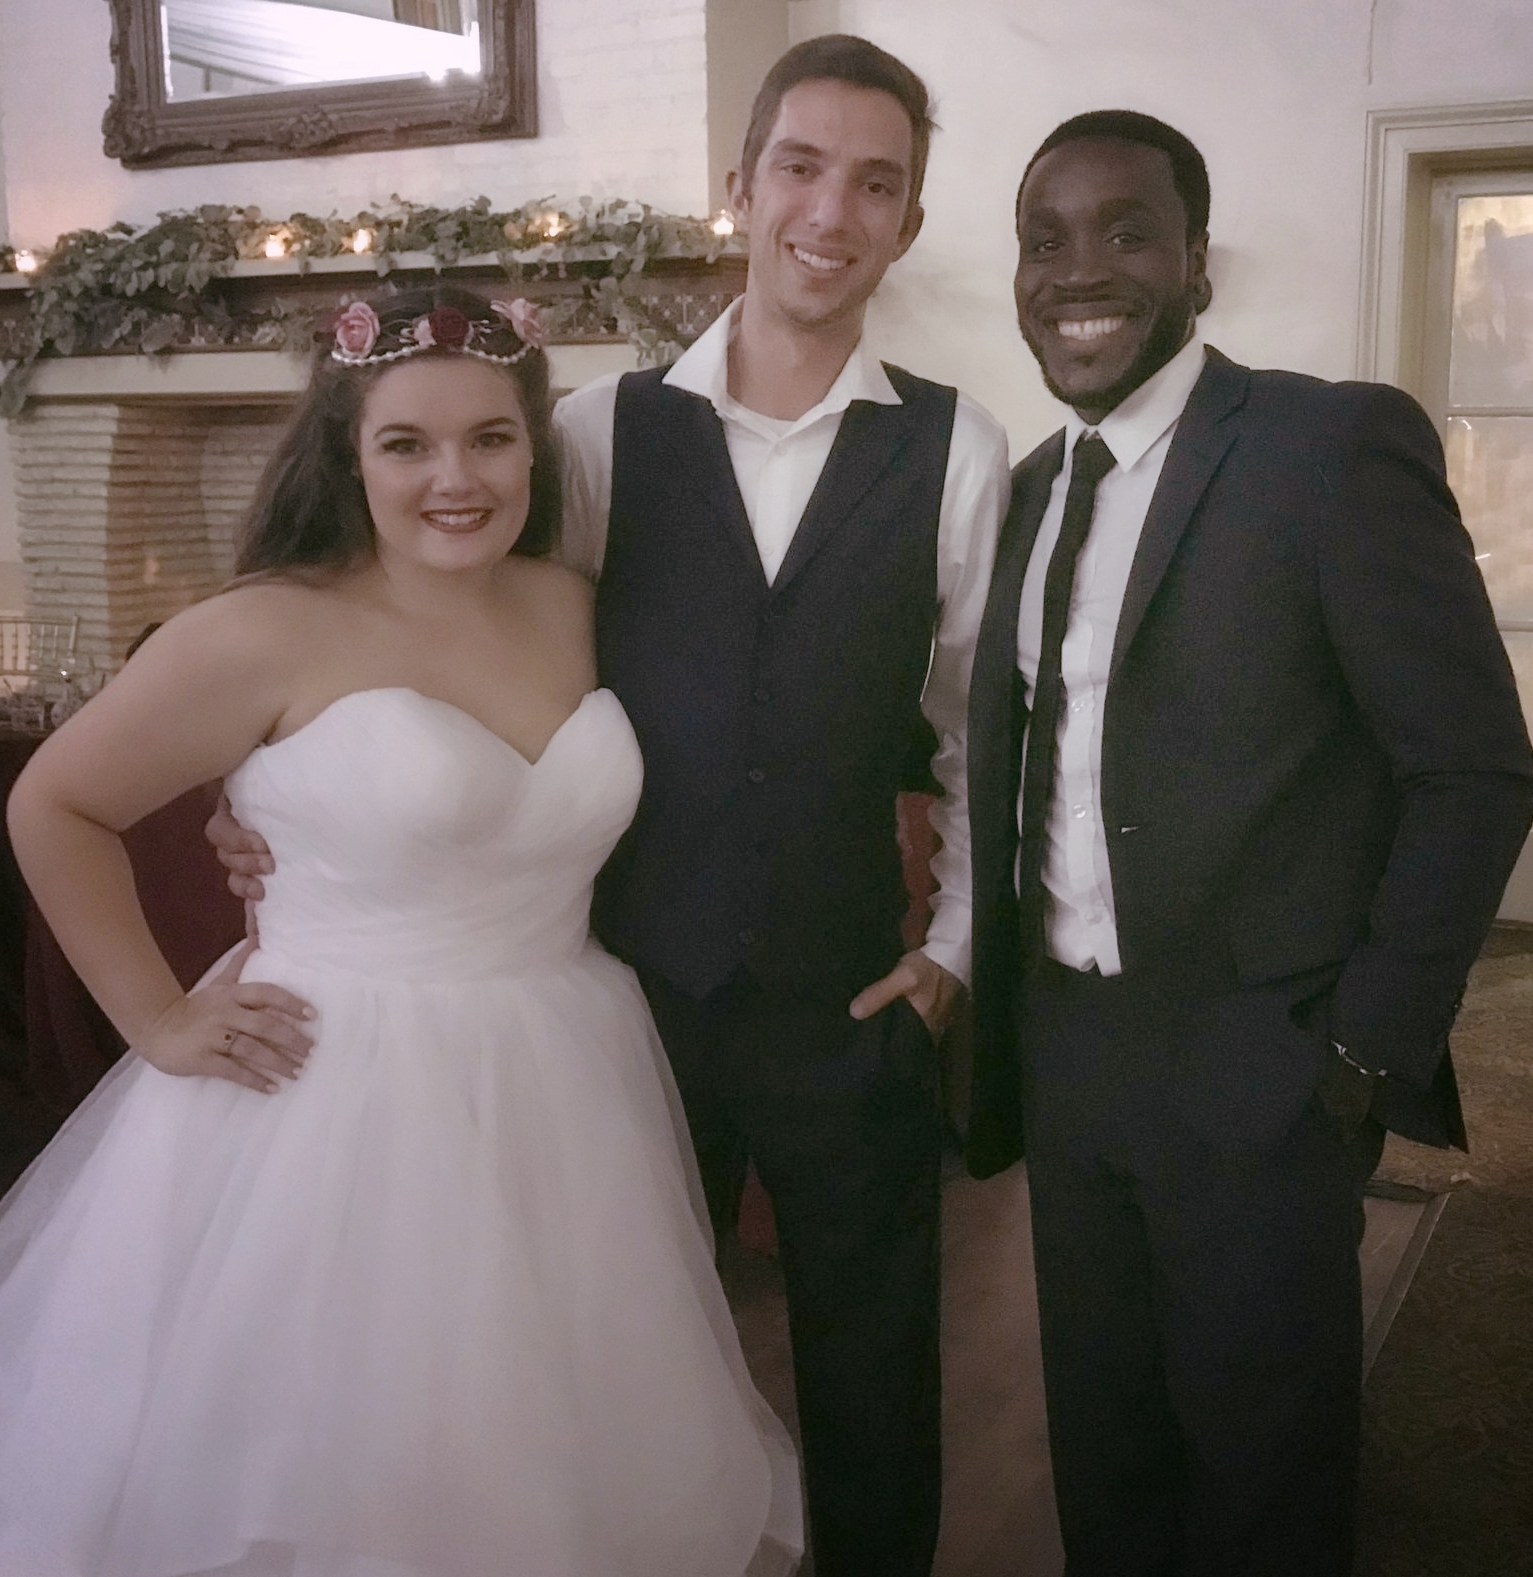 Presley & Brandon - Charles was awesome! I booked him only a week before my wedding but he got everything done and knew exactly what i wanted. I would recommend him to all who need a DJ! Super freindly guy :)